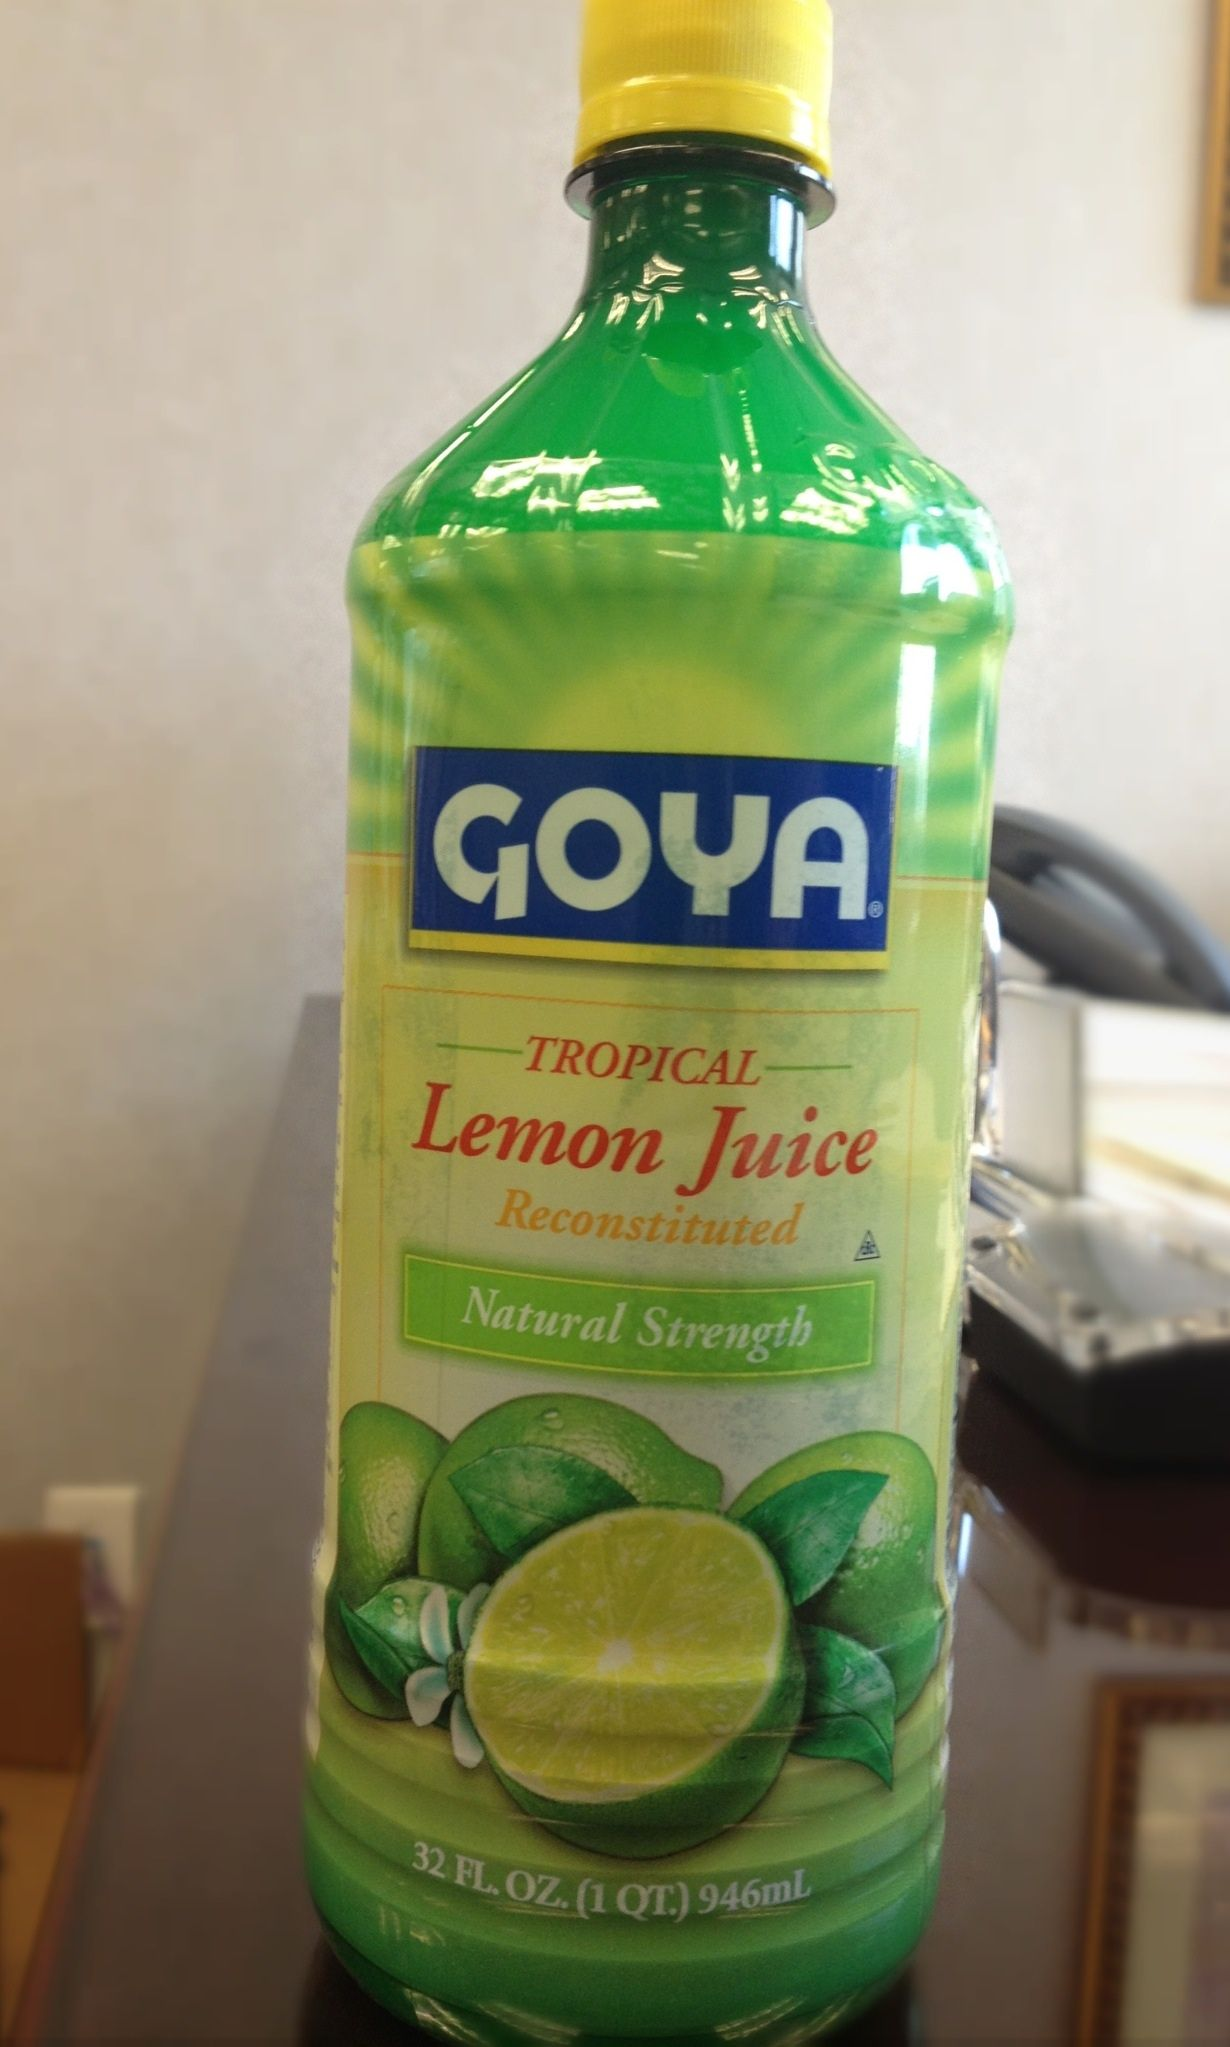 Goya Lemon Juice Display Indian Food Recipes